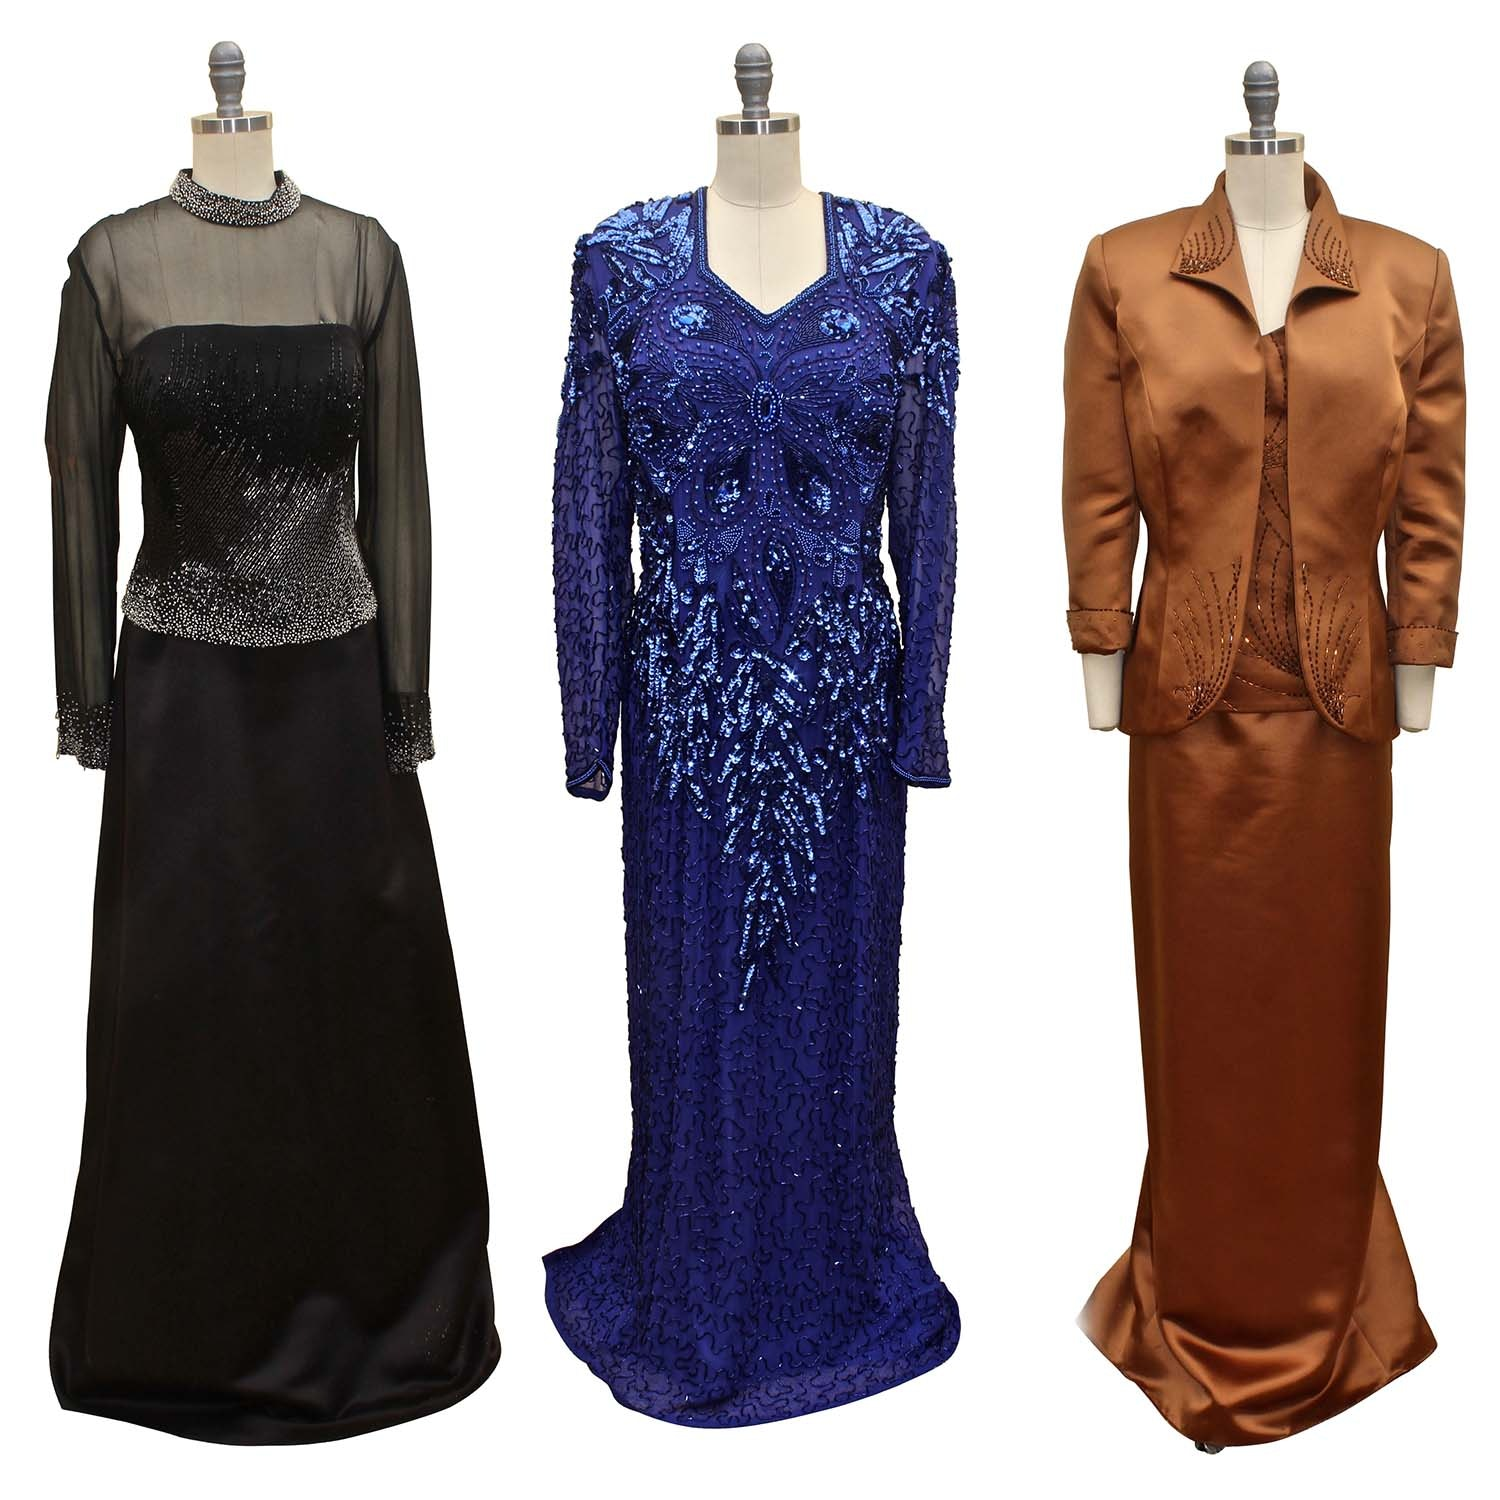 Women's Embellished Formal Dresses Including Haute Couture Obsessions